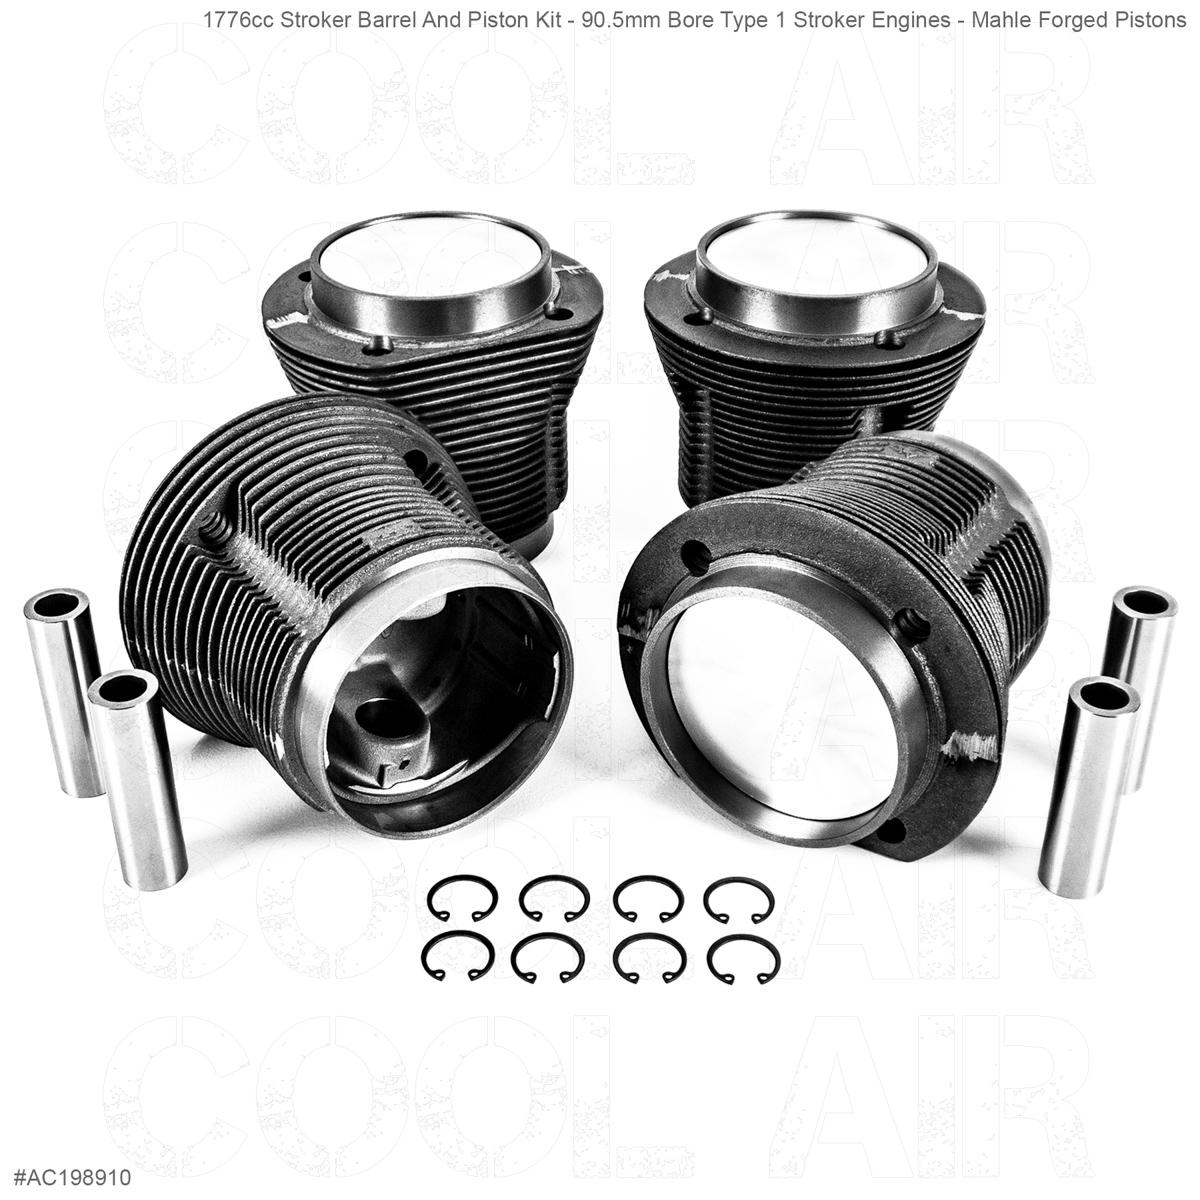 1776cc Stroker Barrel And Piston Kit - 90.5mm Bore Type 1 Stroker Engines - Mahle Forged Pistons